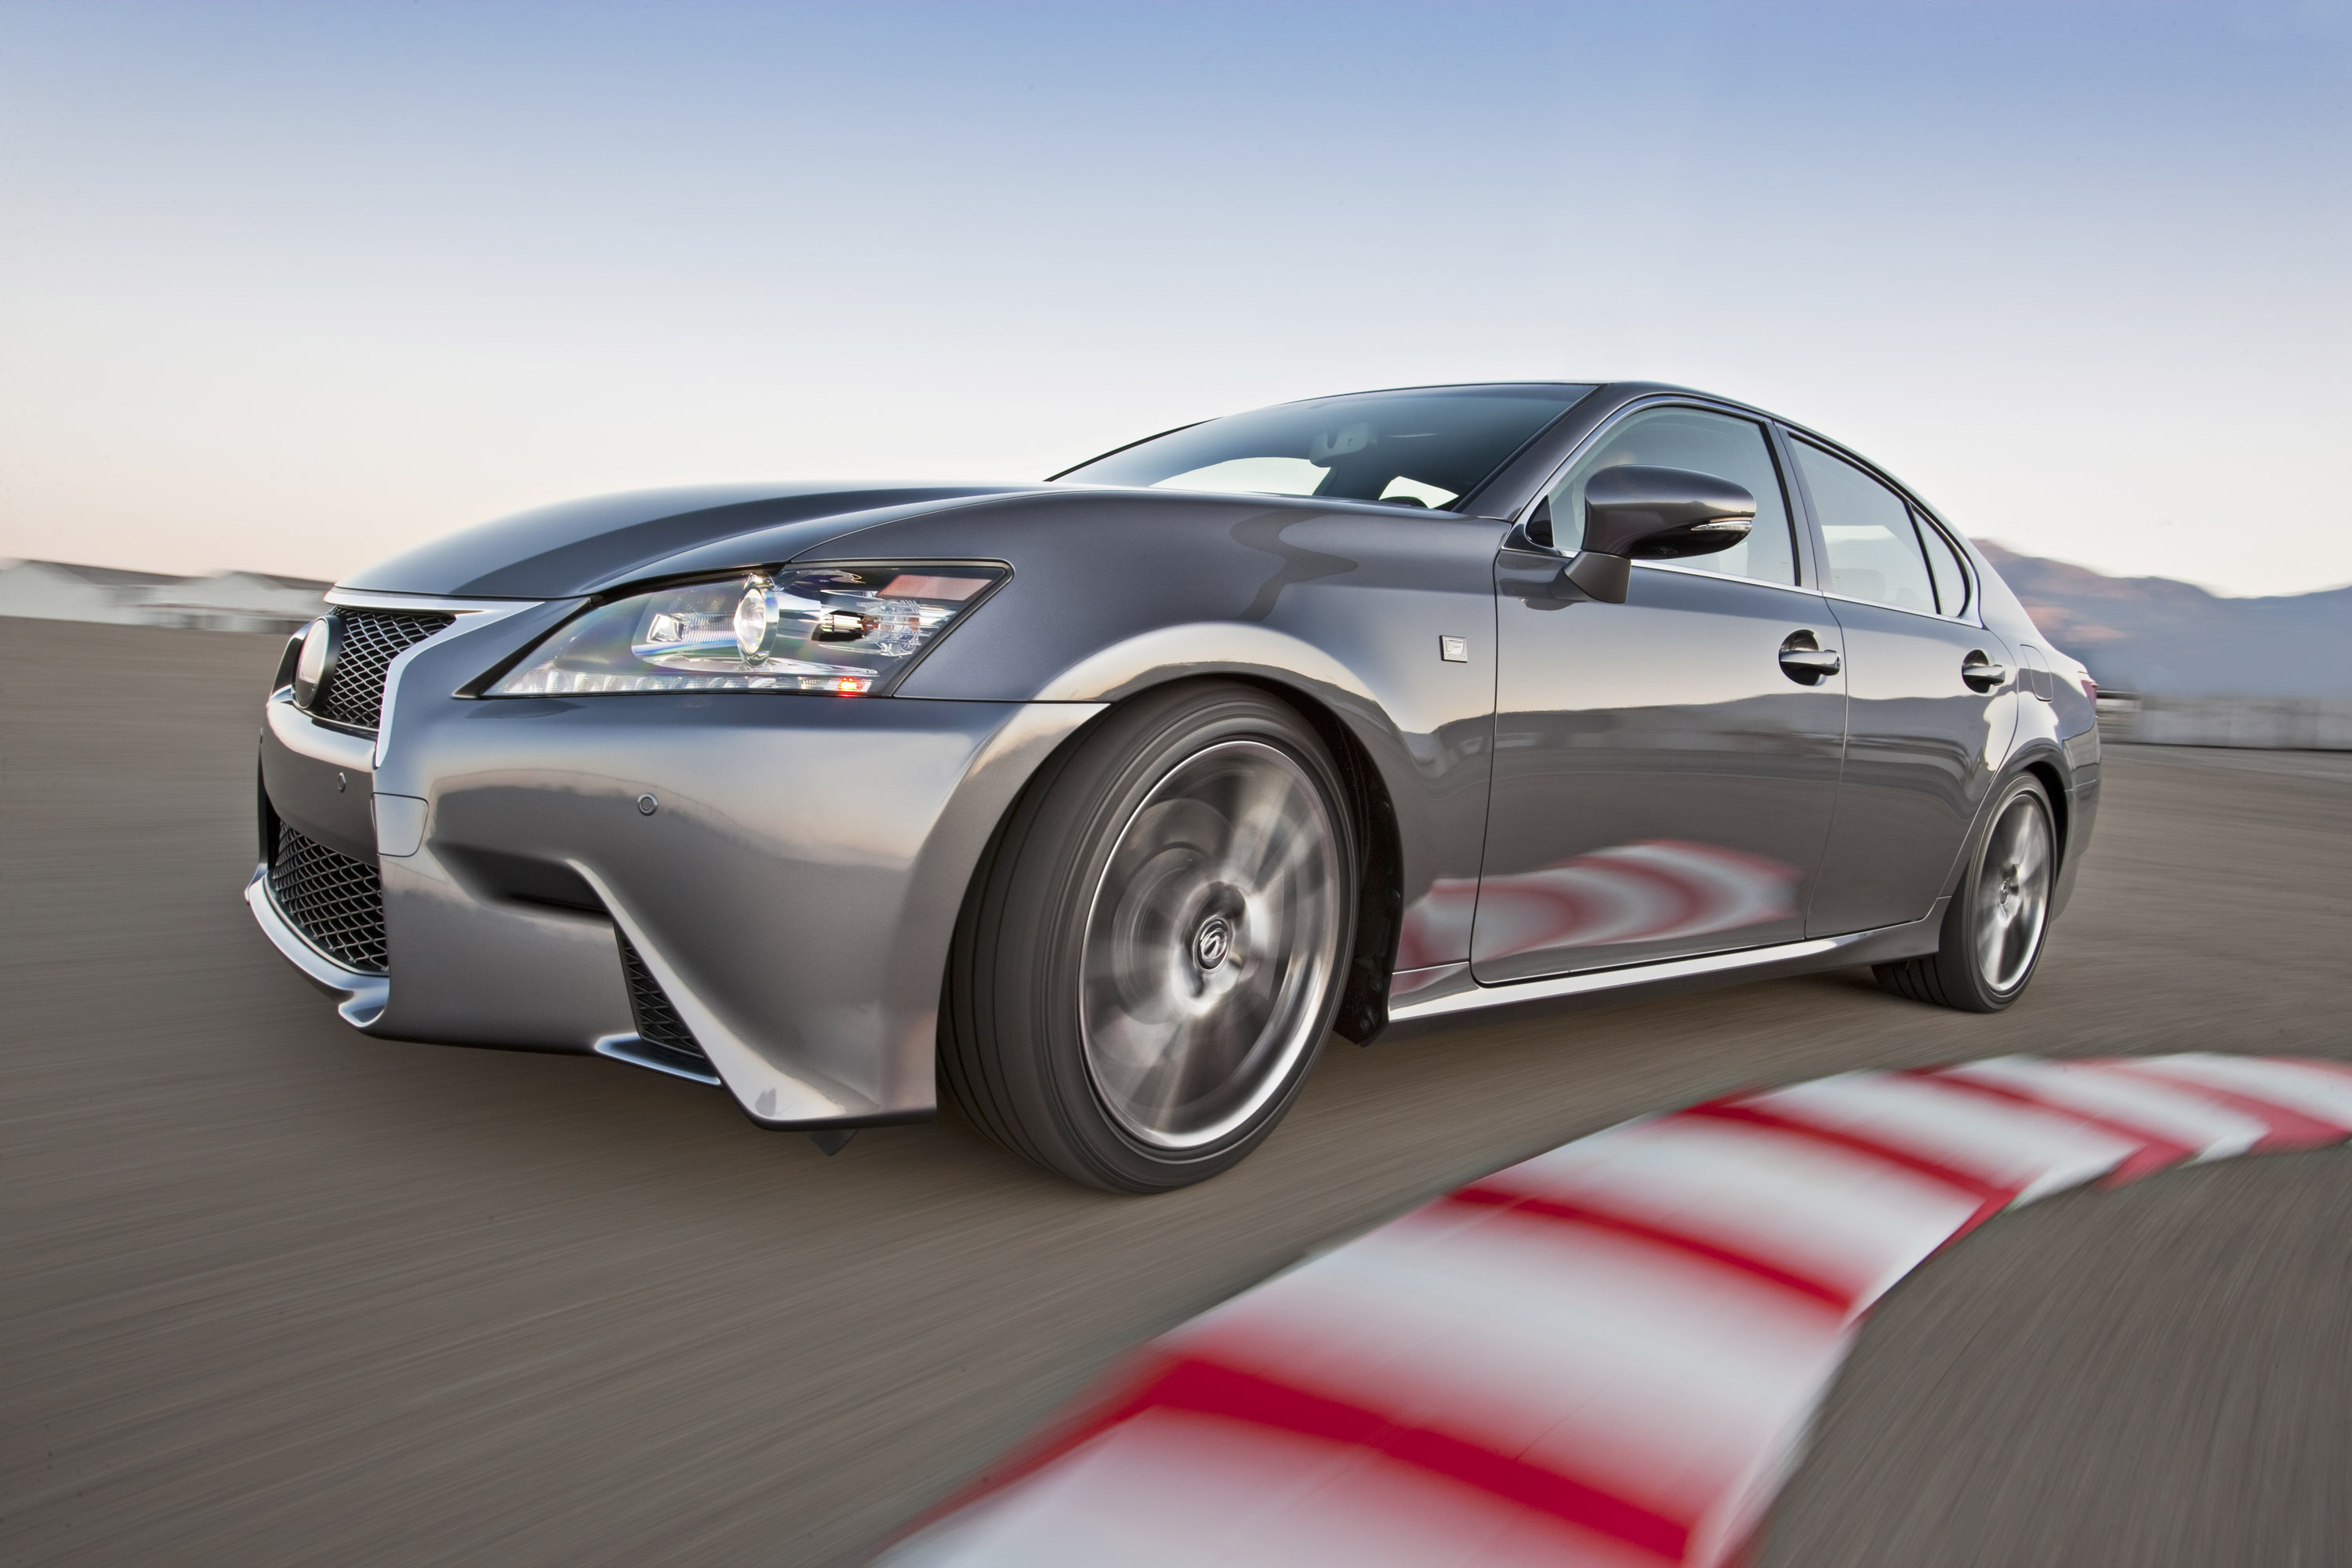 2013 Lexus GS 350 F Sport Recall Due To ECU Glitch